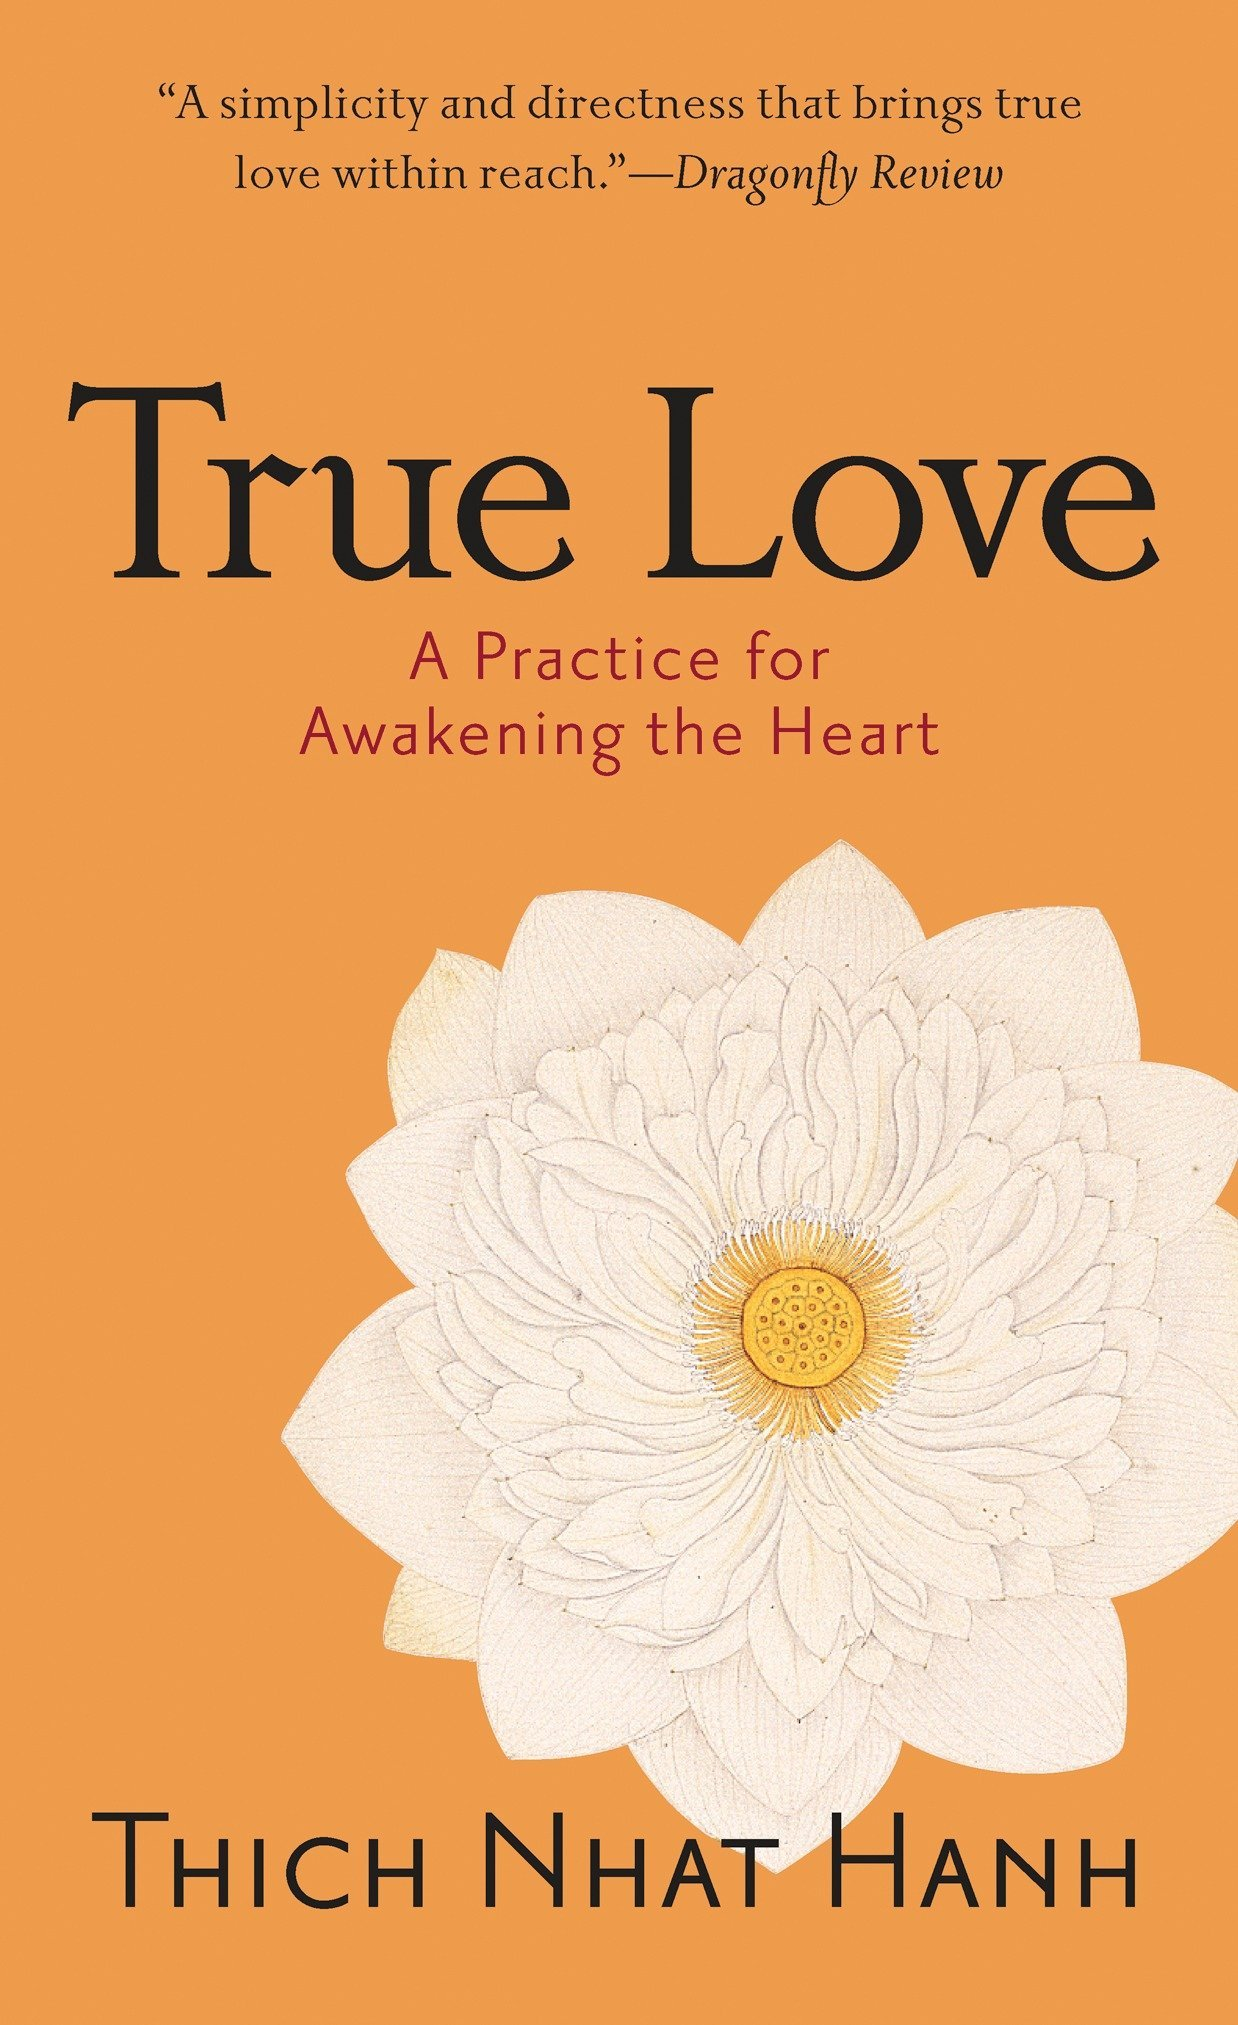 True love a practice for awakening the heart thich nhat hanh true love a practice for awakening the heart thich nhat hanh 9781590304044 amazon books thecheapjerseys Image collections